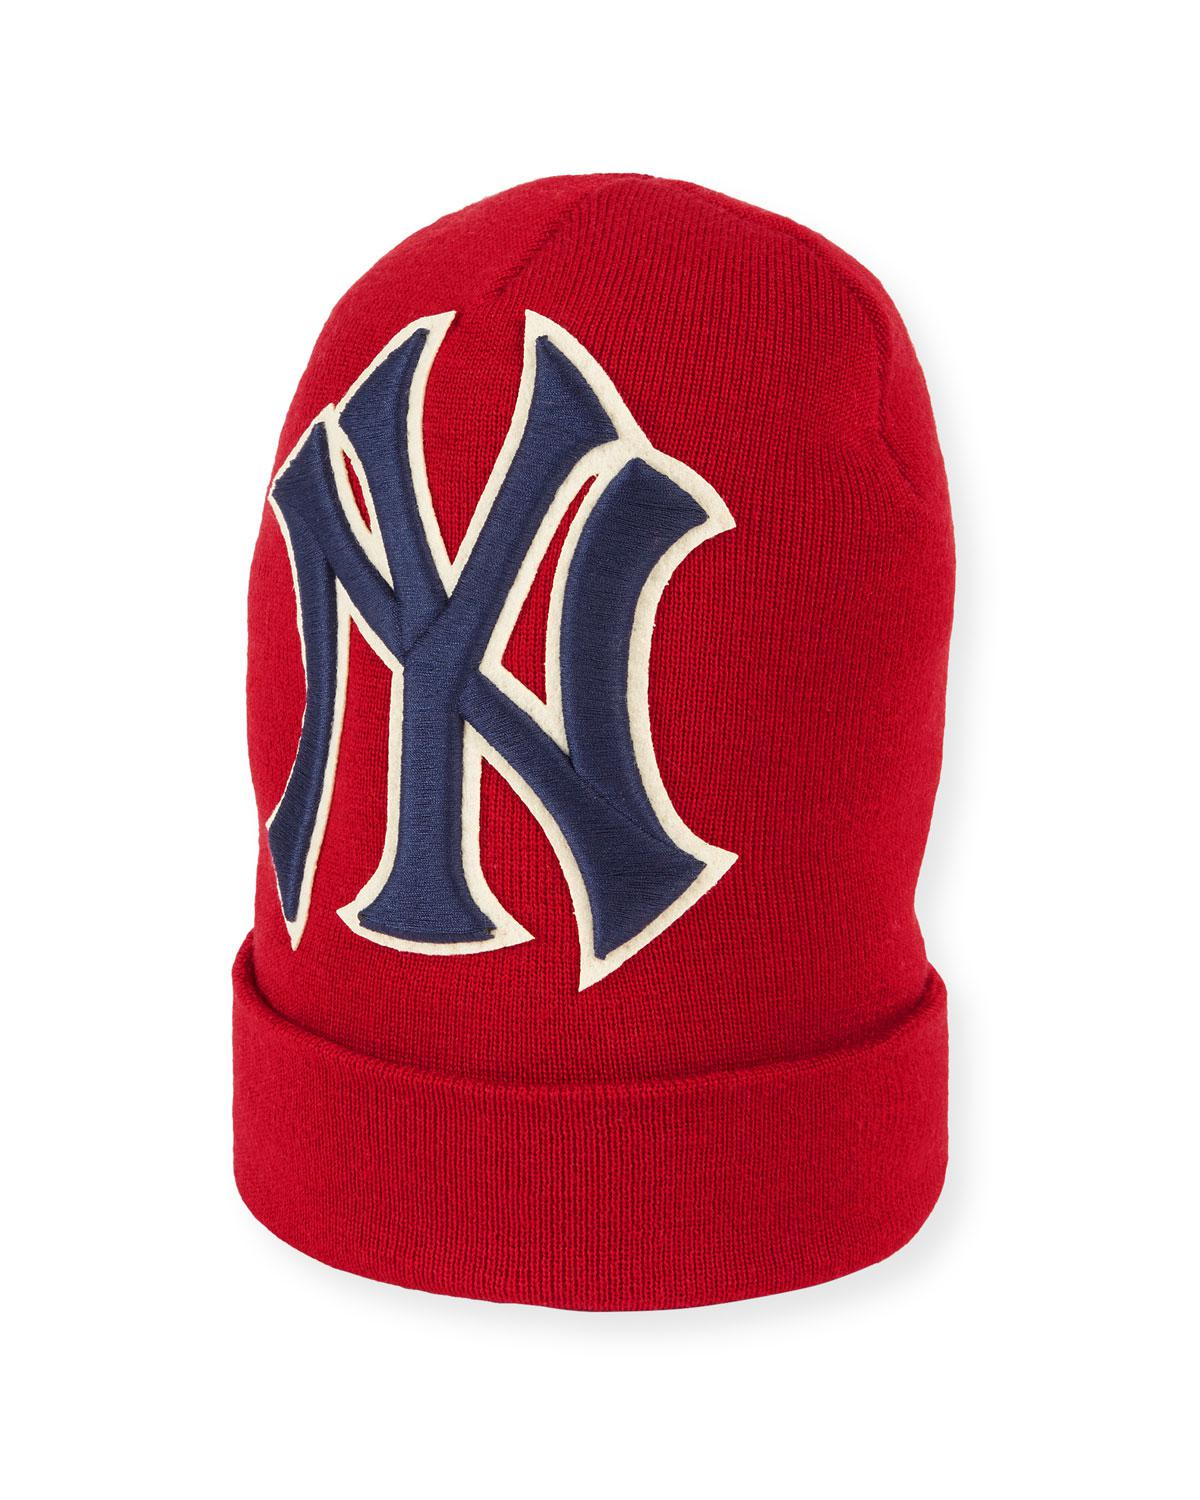 Lyst - Gucci Men s New York Yankees Mlb Patch Beanie Hat in Red for Men a1156d5fb43b